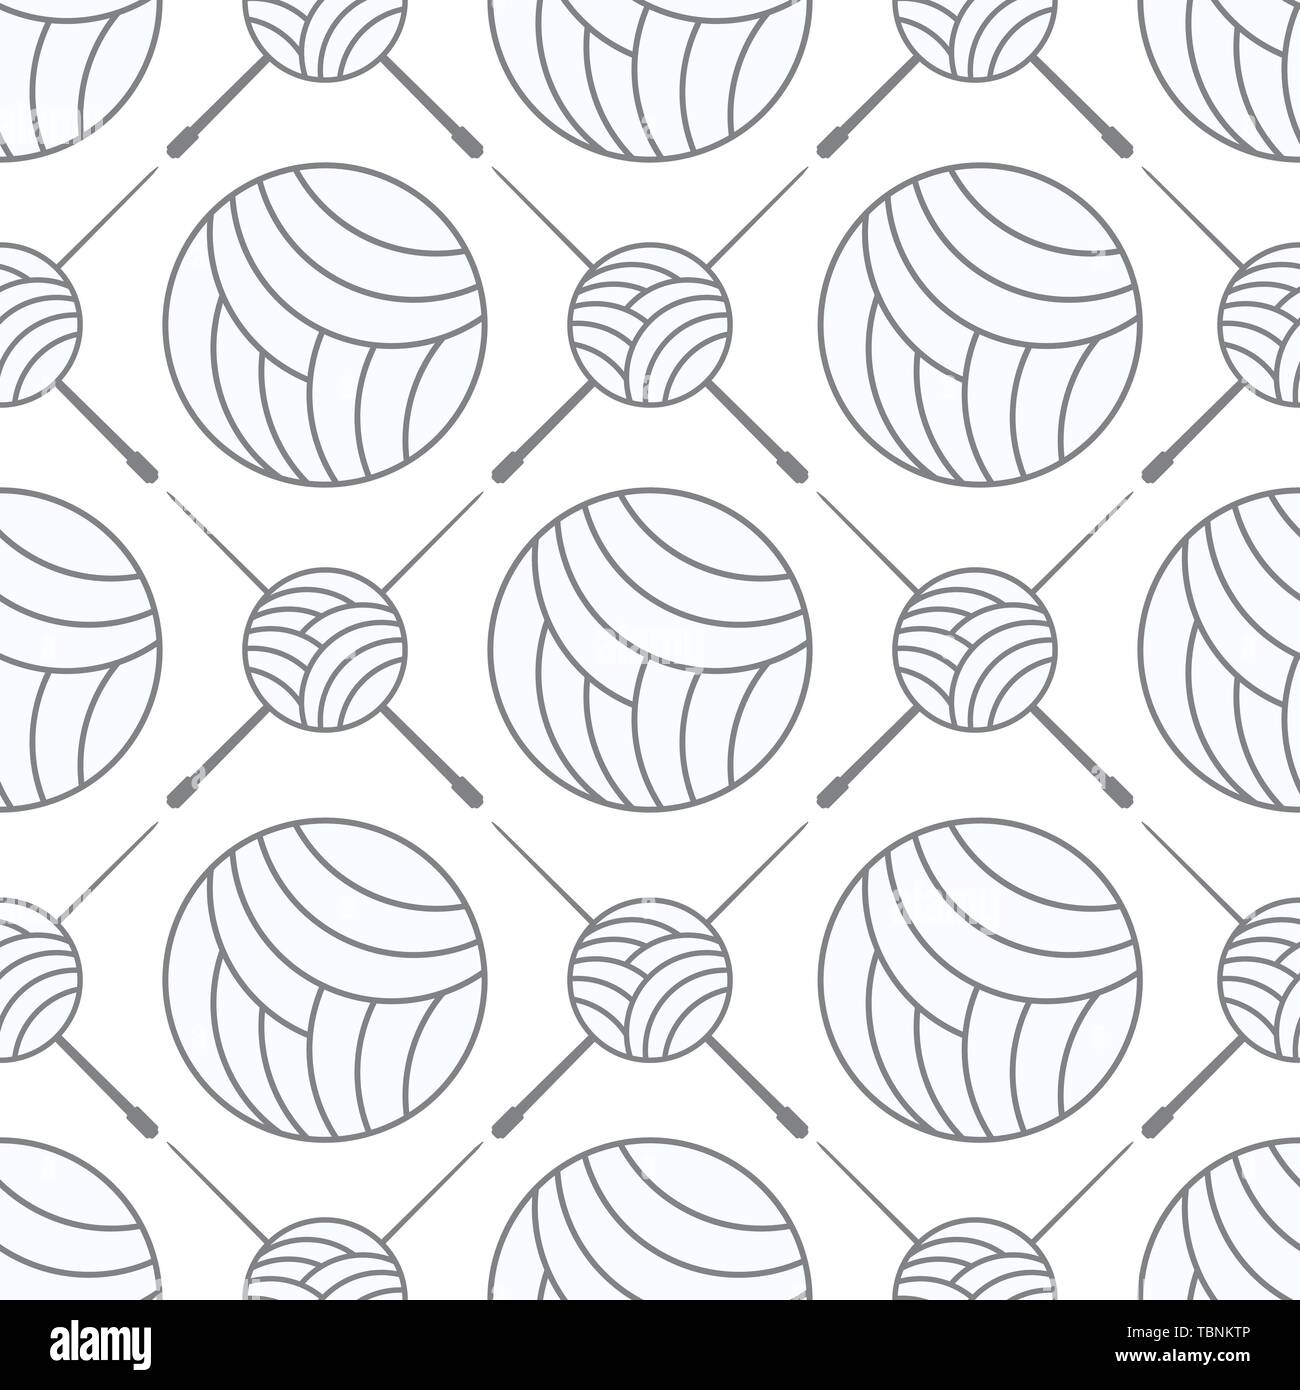 seamless balls of yarn and knitting needles. seamless background needlework, vector illustration - Stock Vector